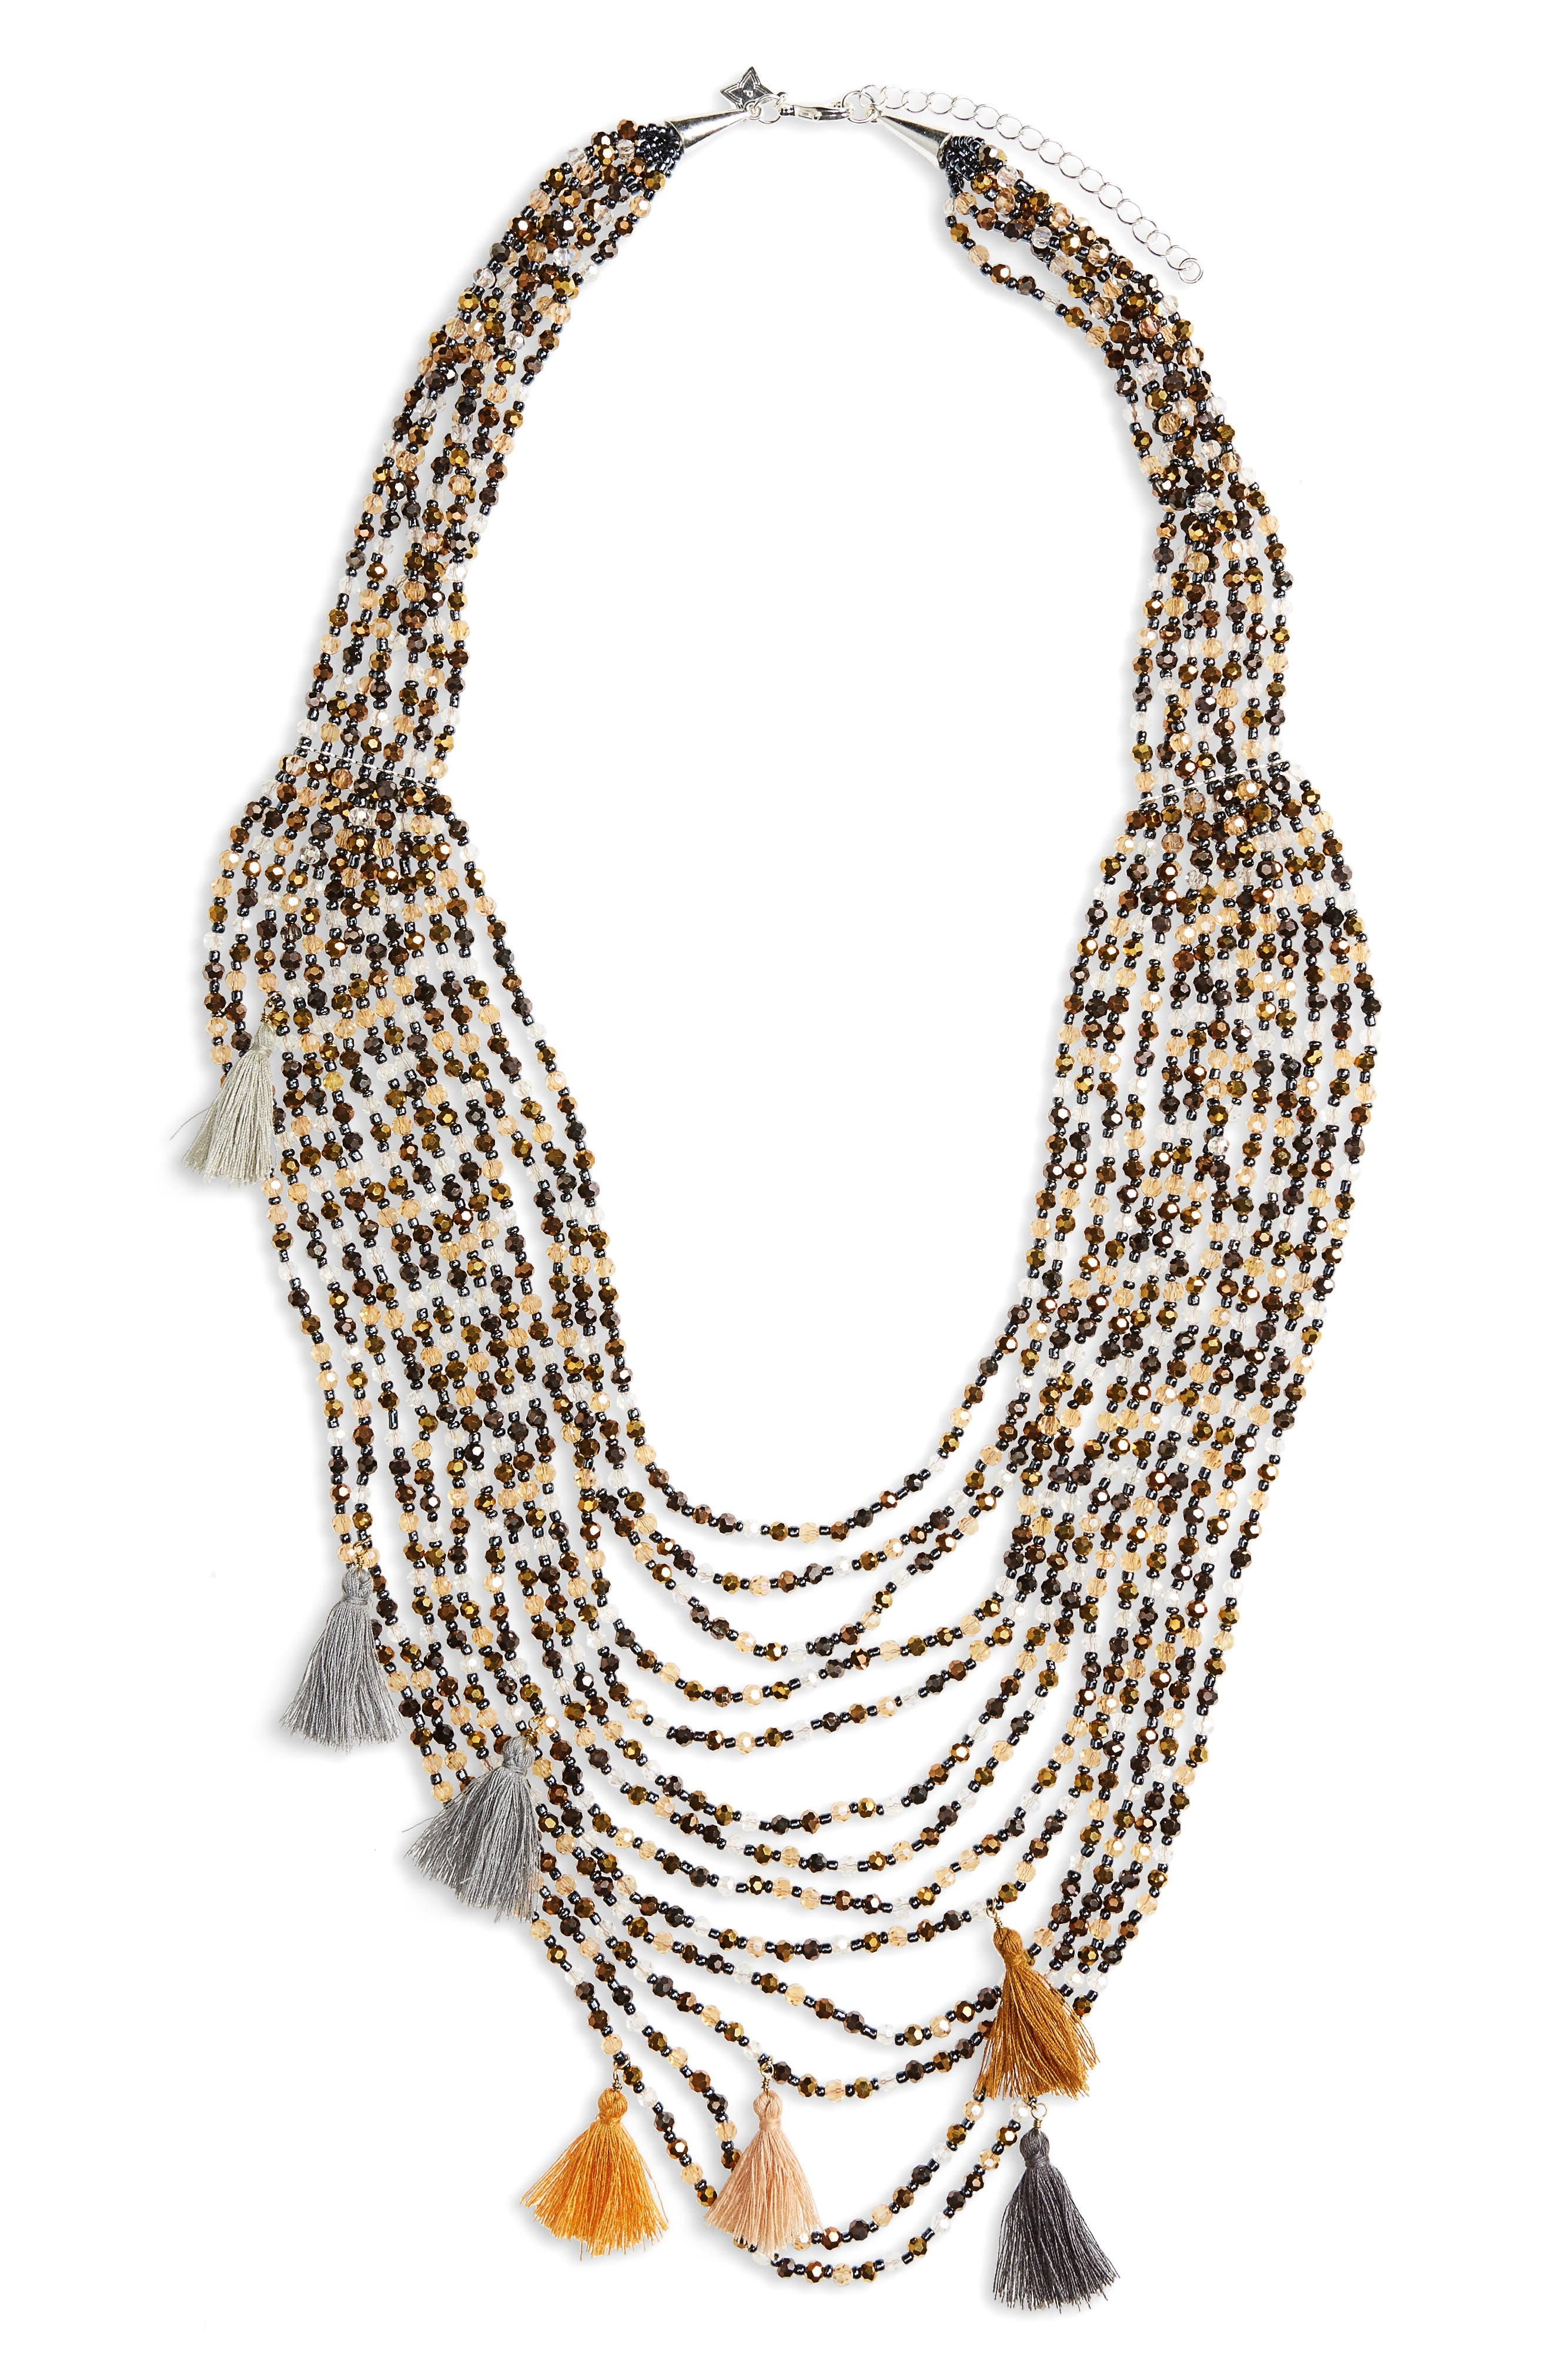 Multistrand Crystal Statement Necklace,                         Main,                         color, Multi